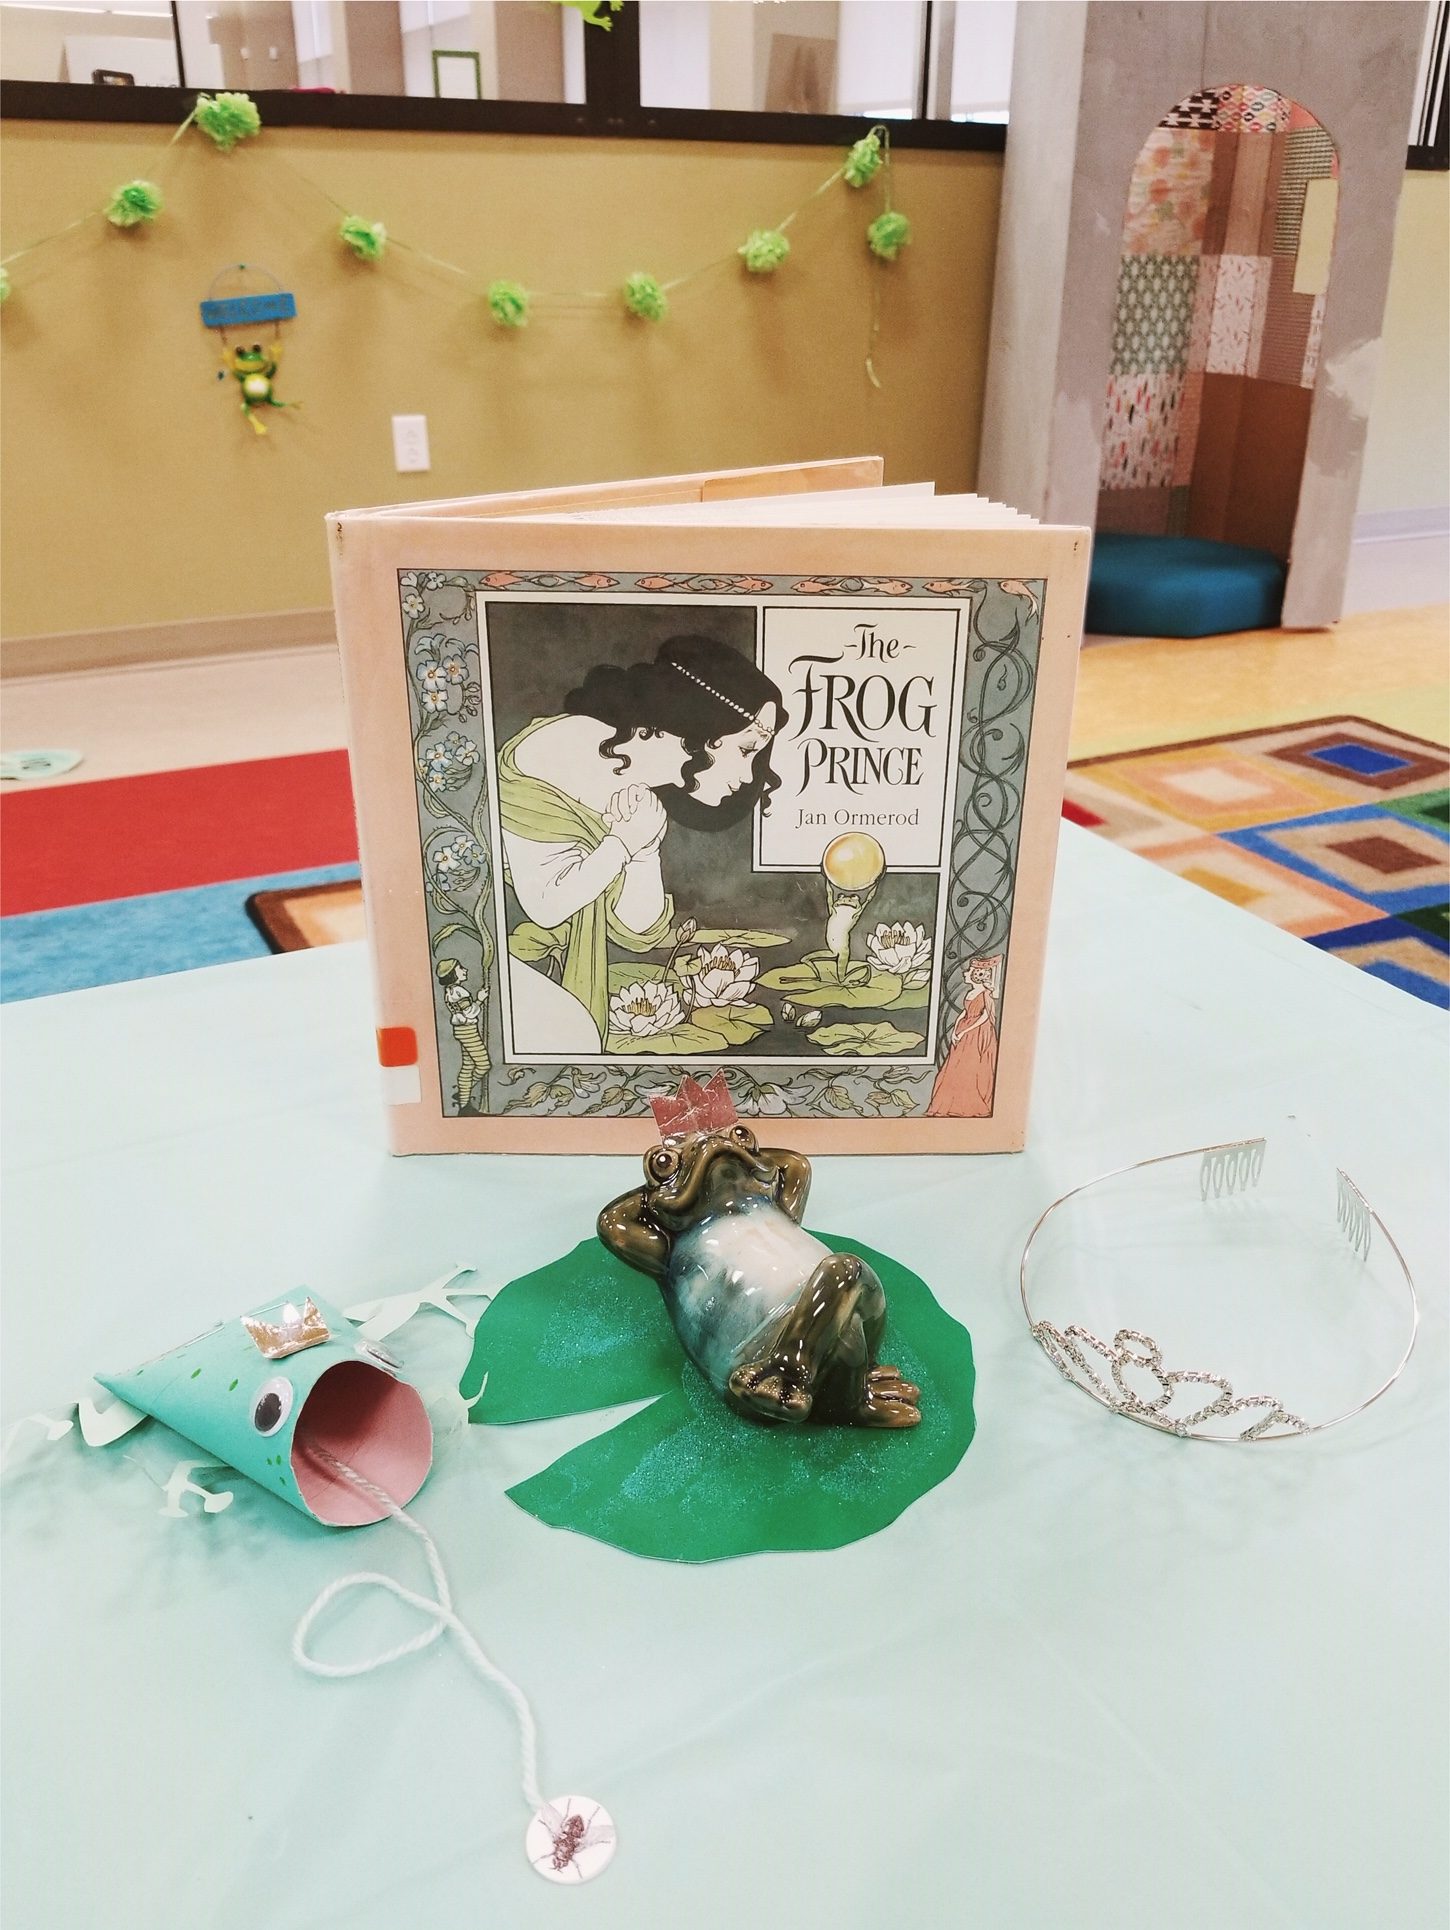 The Frog Prince Story Time #frogprince #frog #party #thefrogprince #fairytale #storytime #kidsparty #kidscraft #library #childrenslibrary